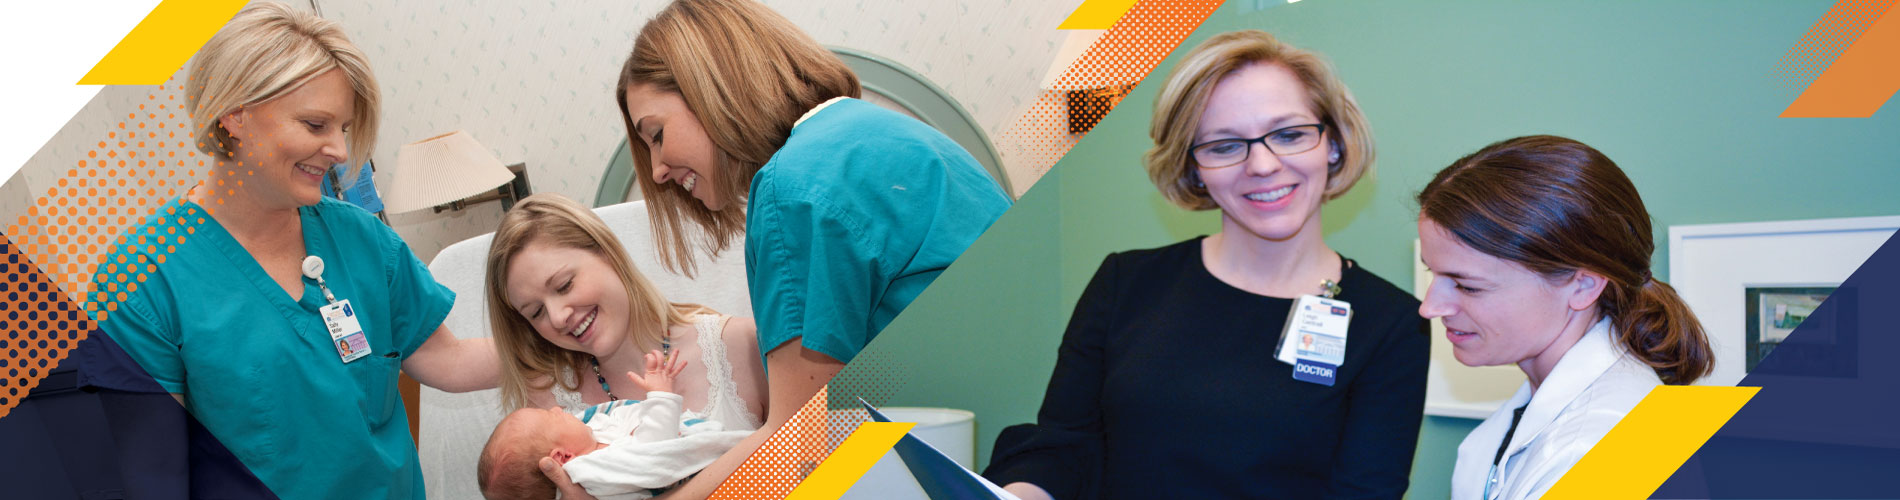 images of woman with baby next to doctor looking at papers at uva